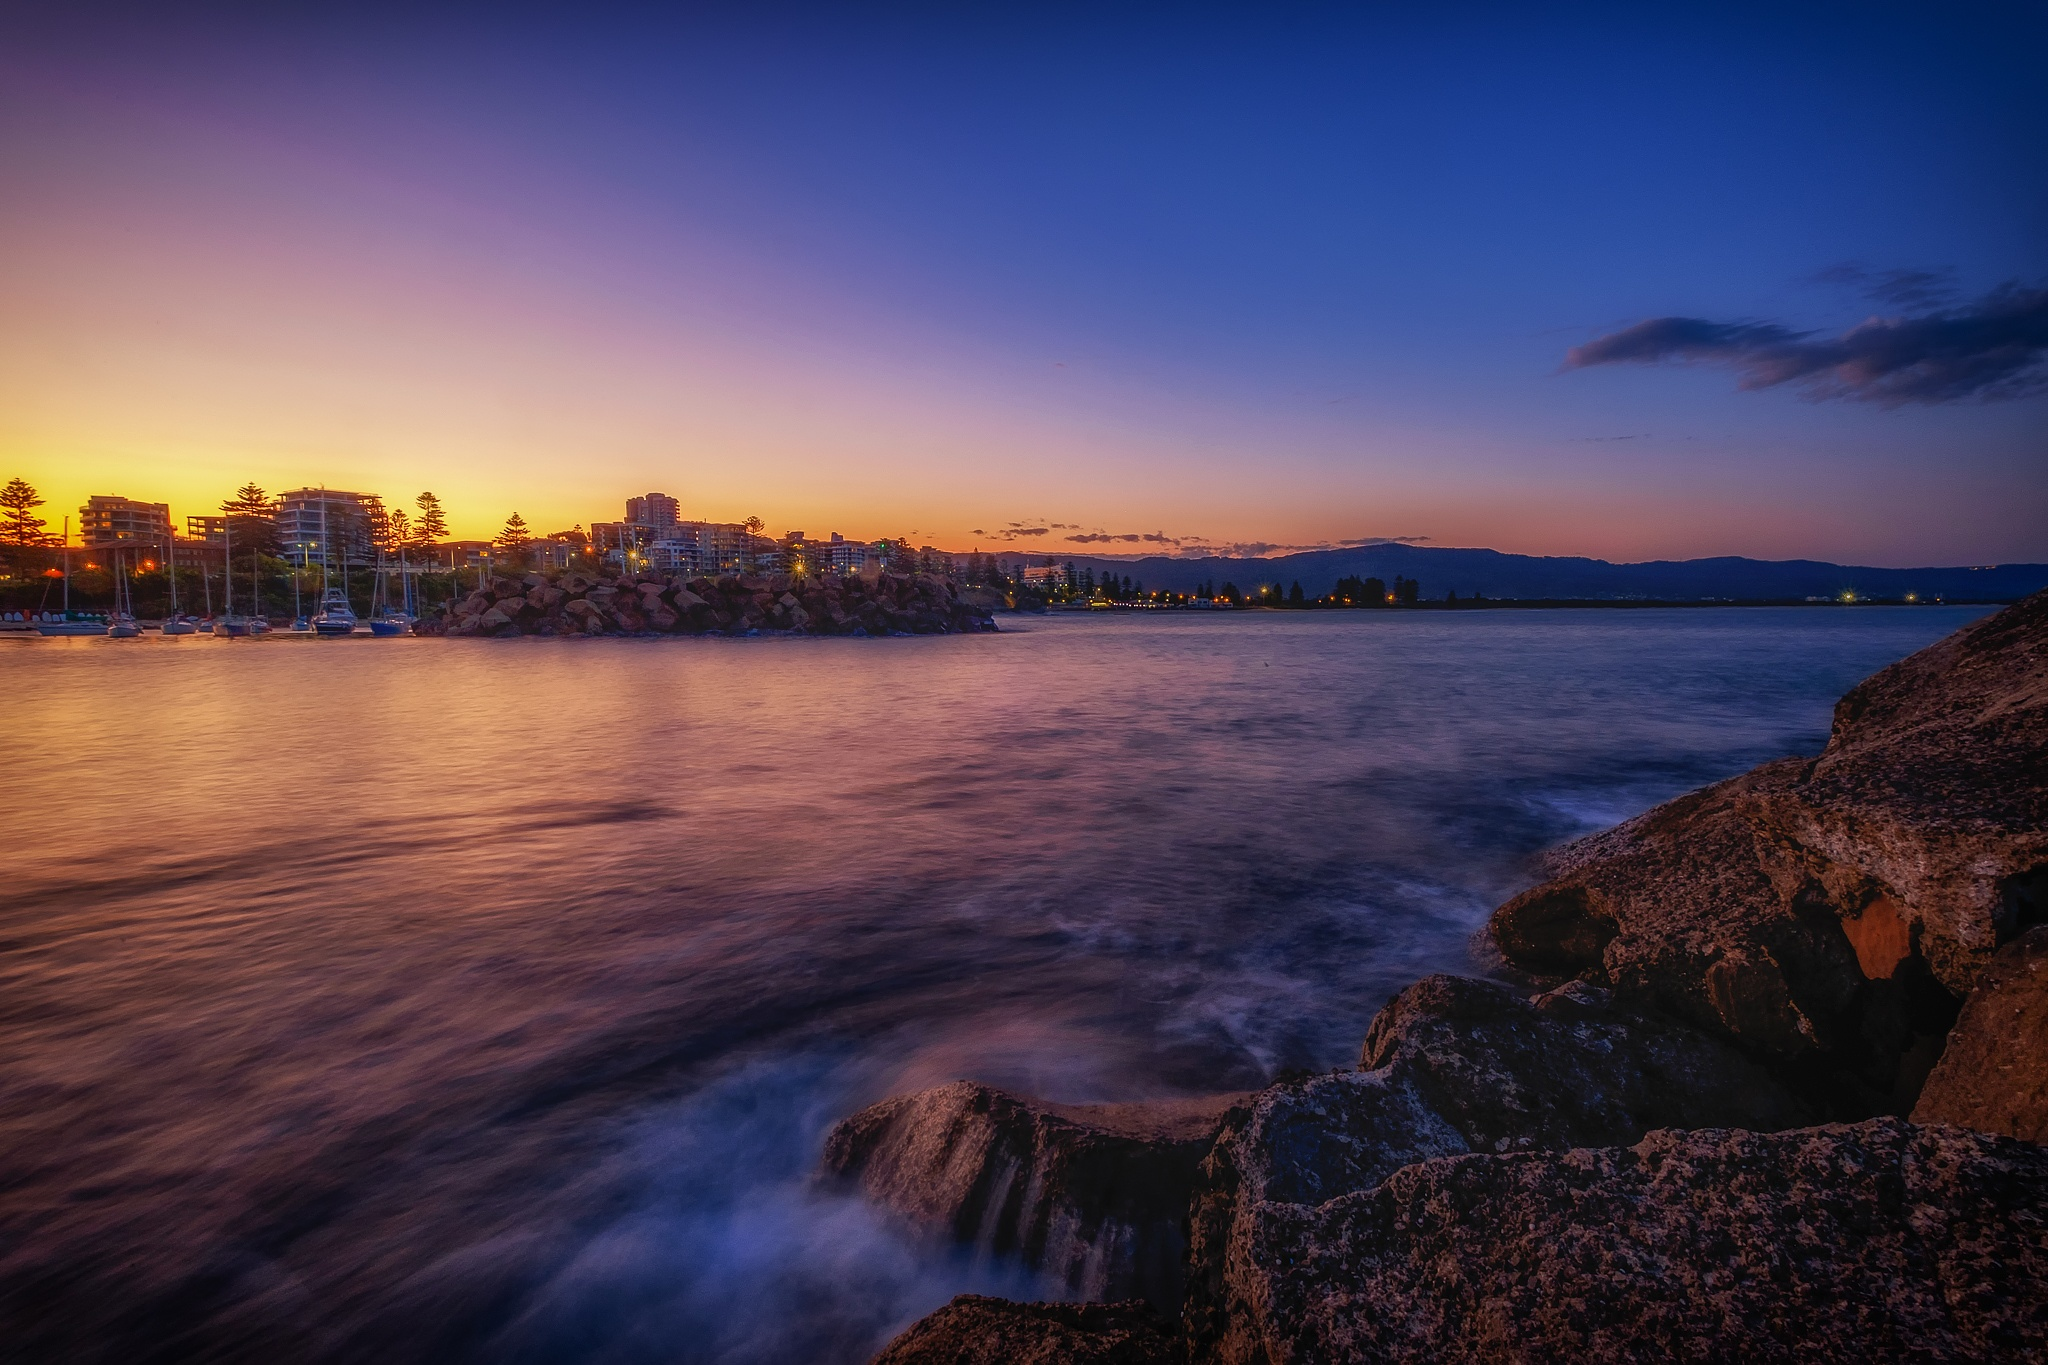 A Golden Sunset at the Breakwater by Peter Medbury